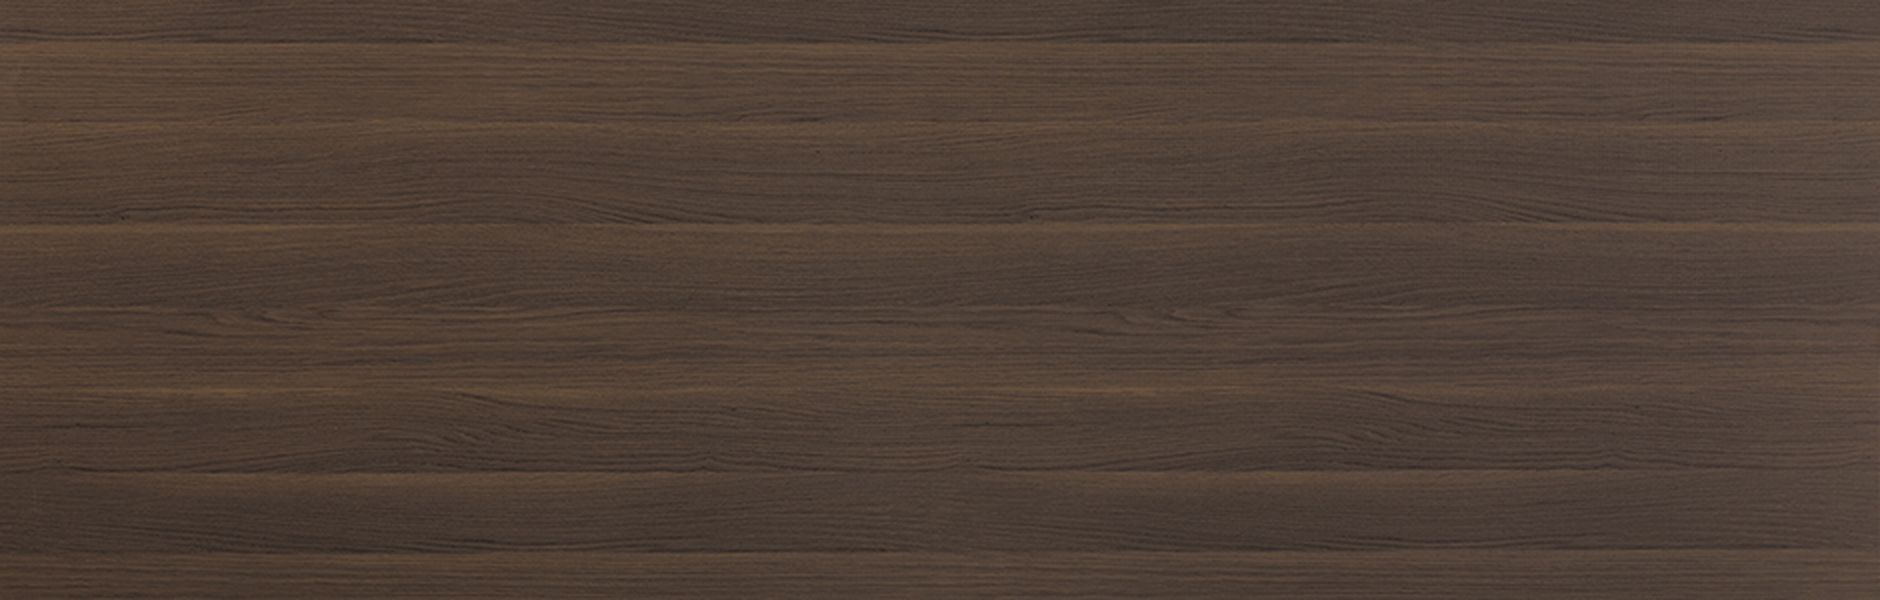 Фото 1 - Декоративные панели Sibu WoodLine nutwood gp